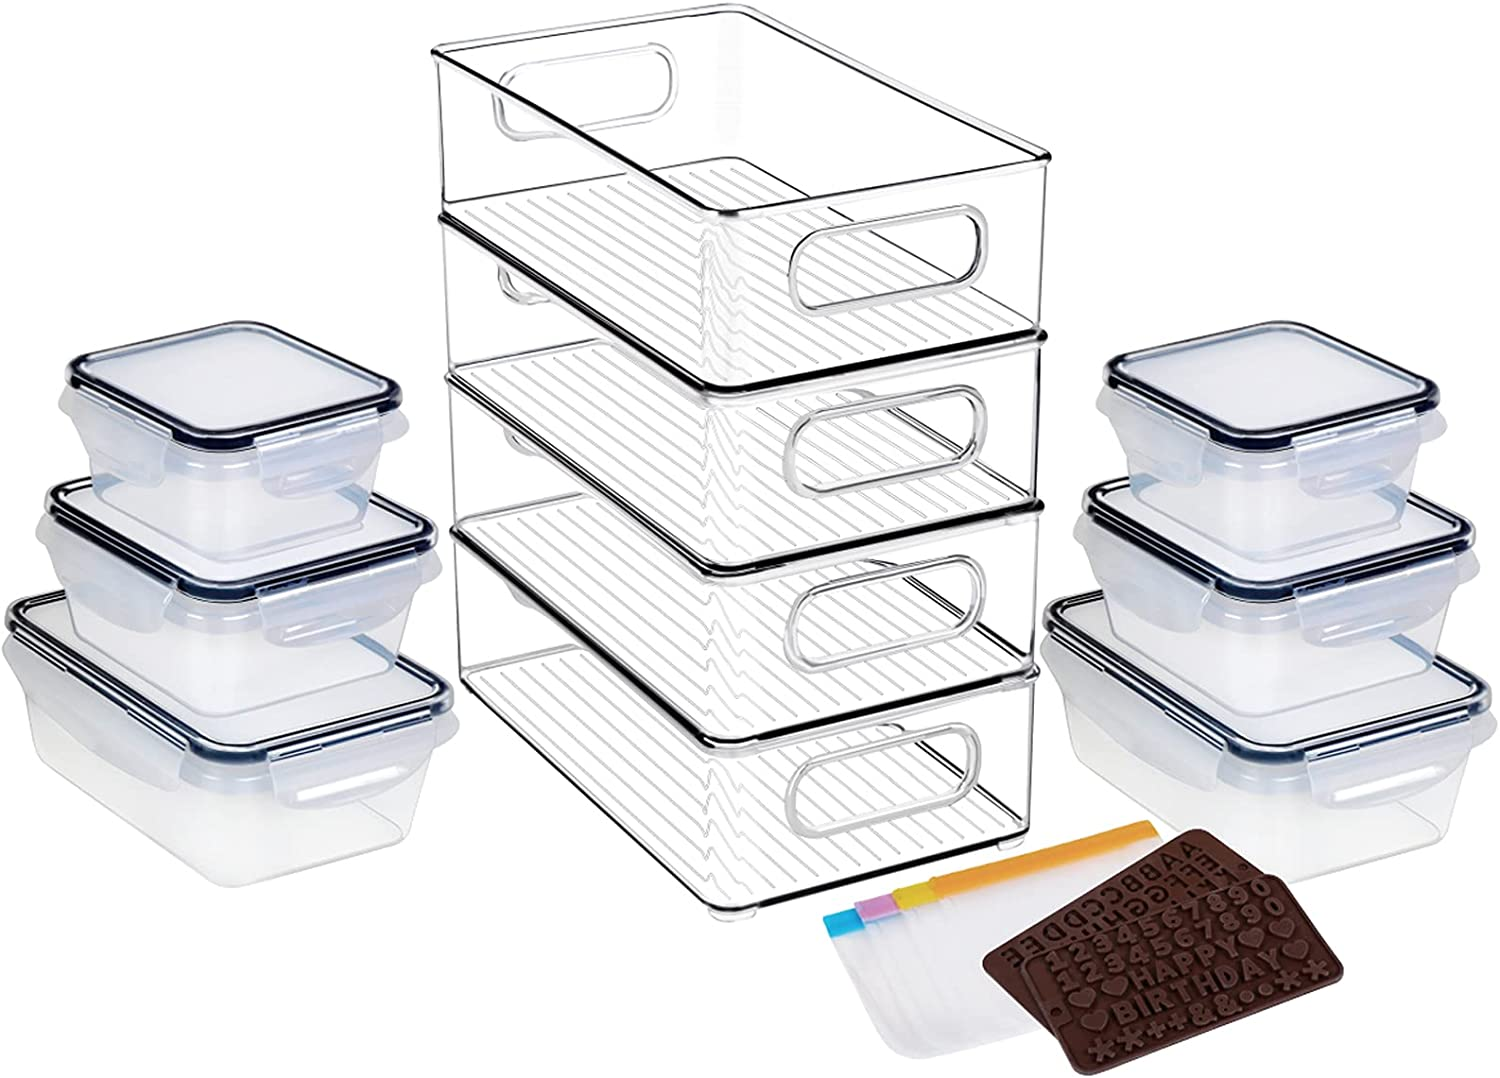 4 Pack Fridge Organizer Bins 10Lx6Wx3H Inch - Stackable Refrigerator Organizers Clear Pantry Storage With /6 Pack(840ML2,550ML2,350ML2) Plastic Freezer Food Container Set for Organization kitchen…